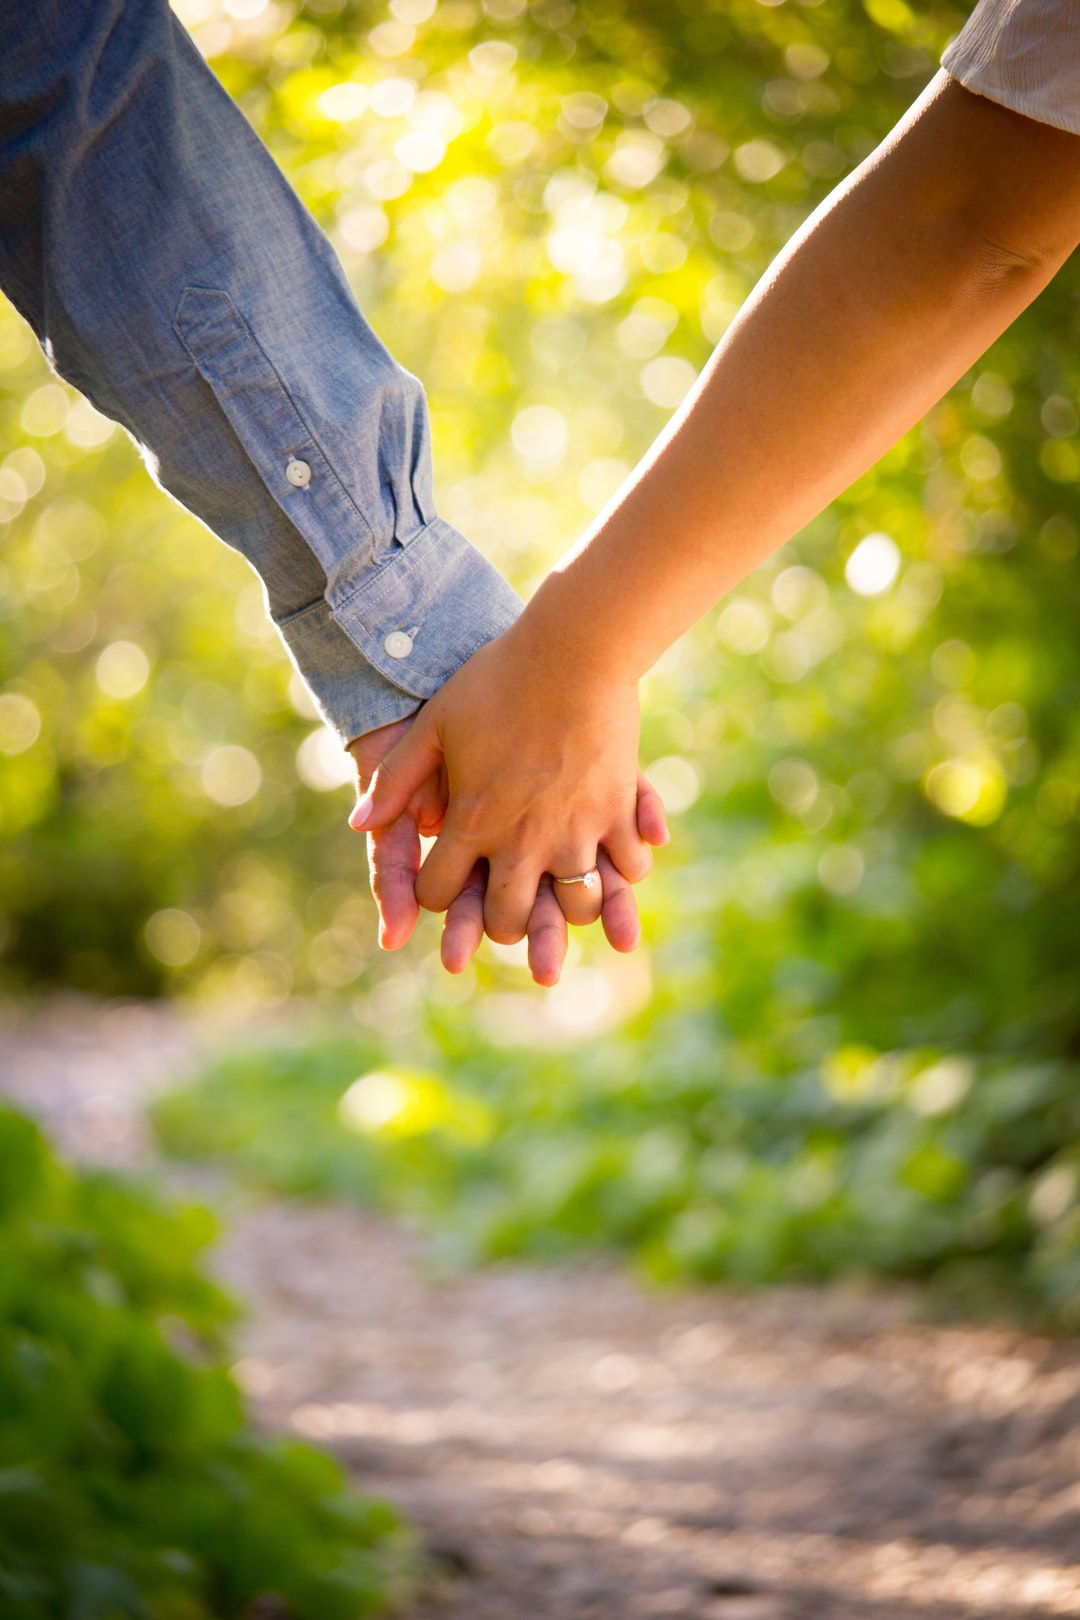 20 relationship pictures download free images on unsplash - 2 hand love wallpaper ...